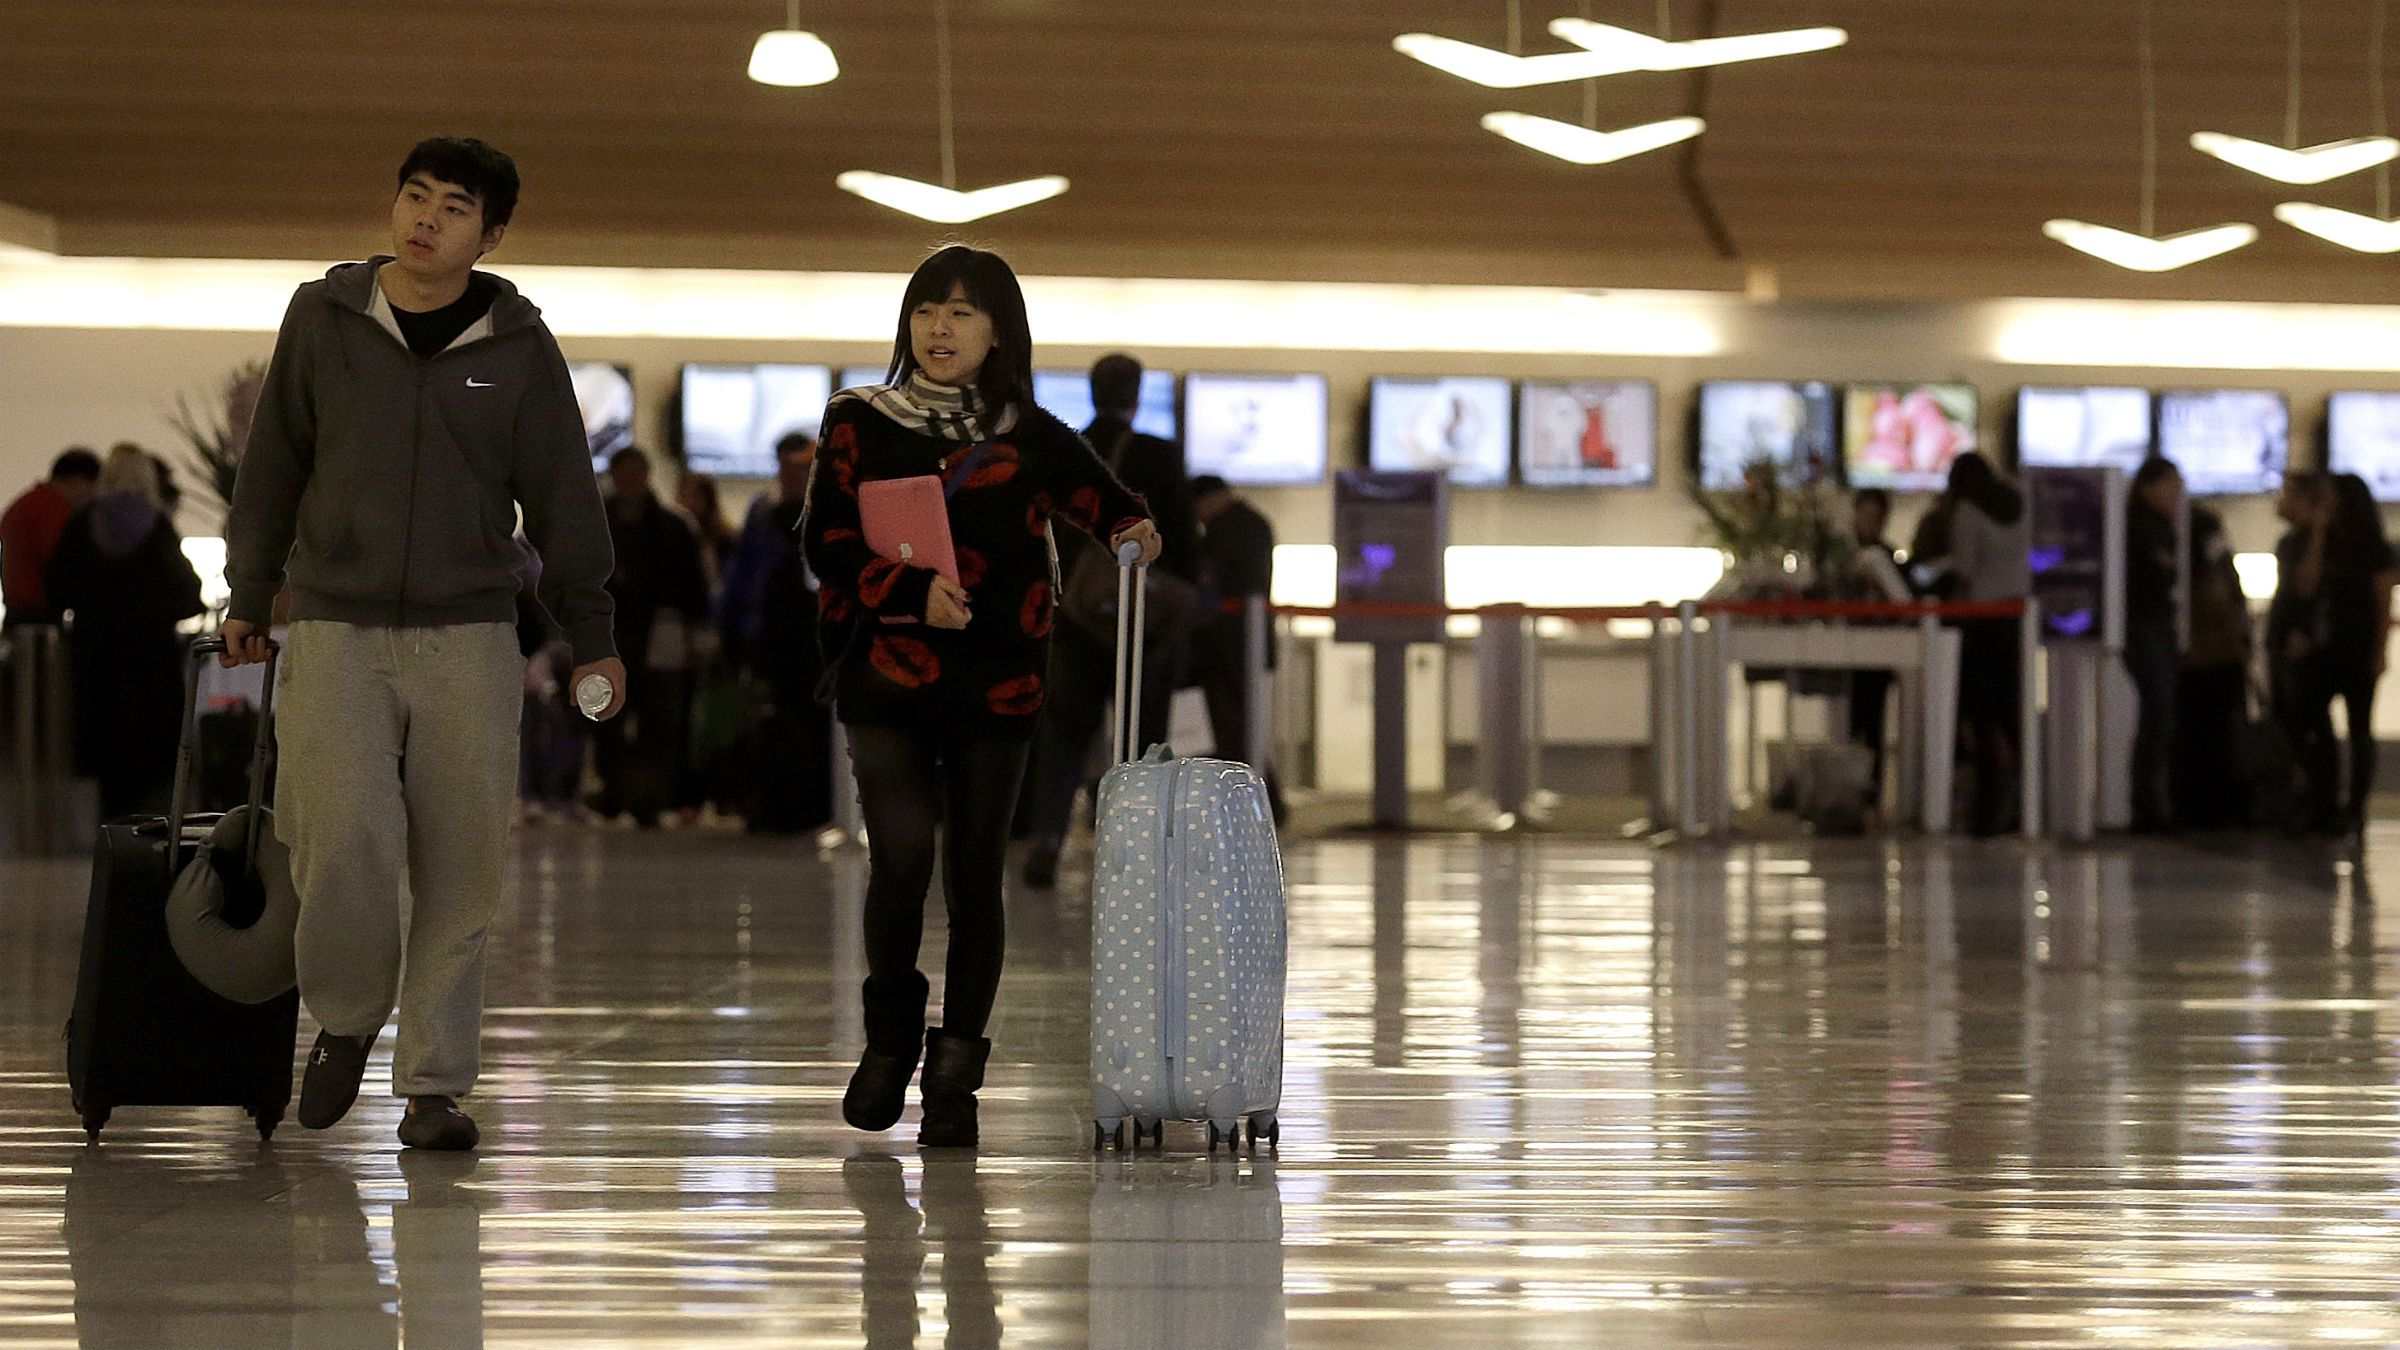 A man and woman walk through the domestic terminal at San Francisco International Airport in San Francisco, Thursday, Nov. 28, 2013. More than 43 million people are to travel over the long holiday weekend, according to AAA. (AP Photo/Jeff Chiu)